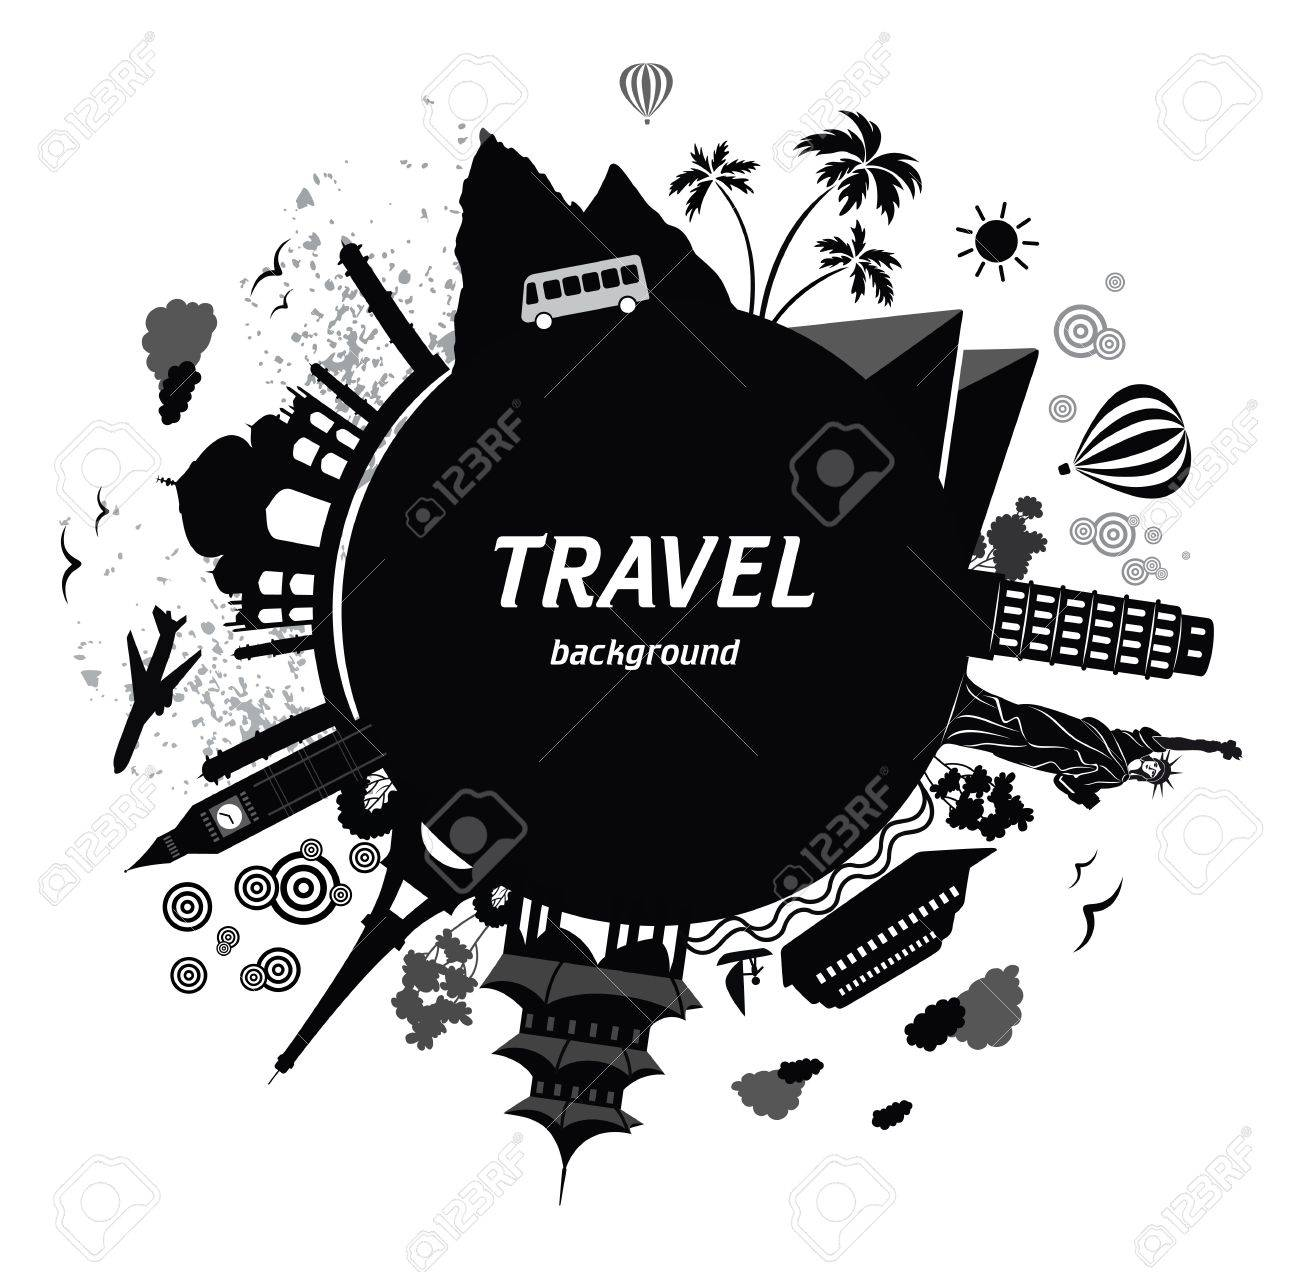 Travel background. Stock Vector - 19574514